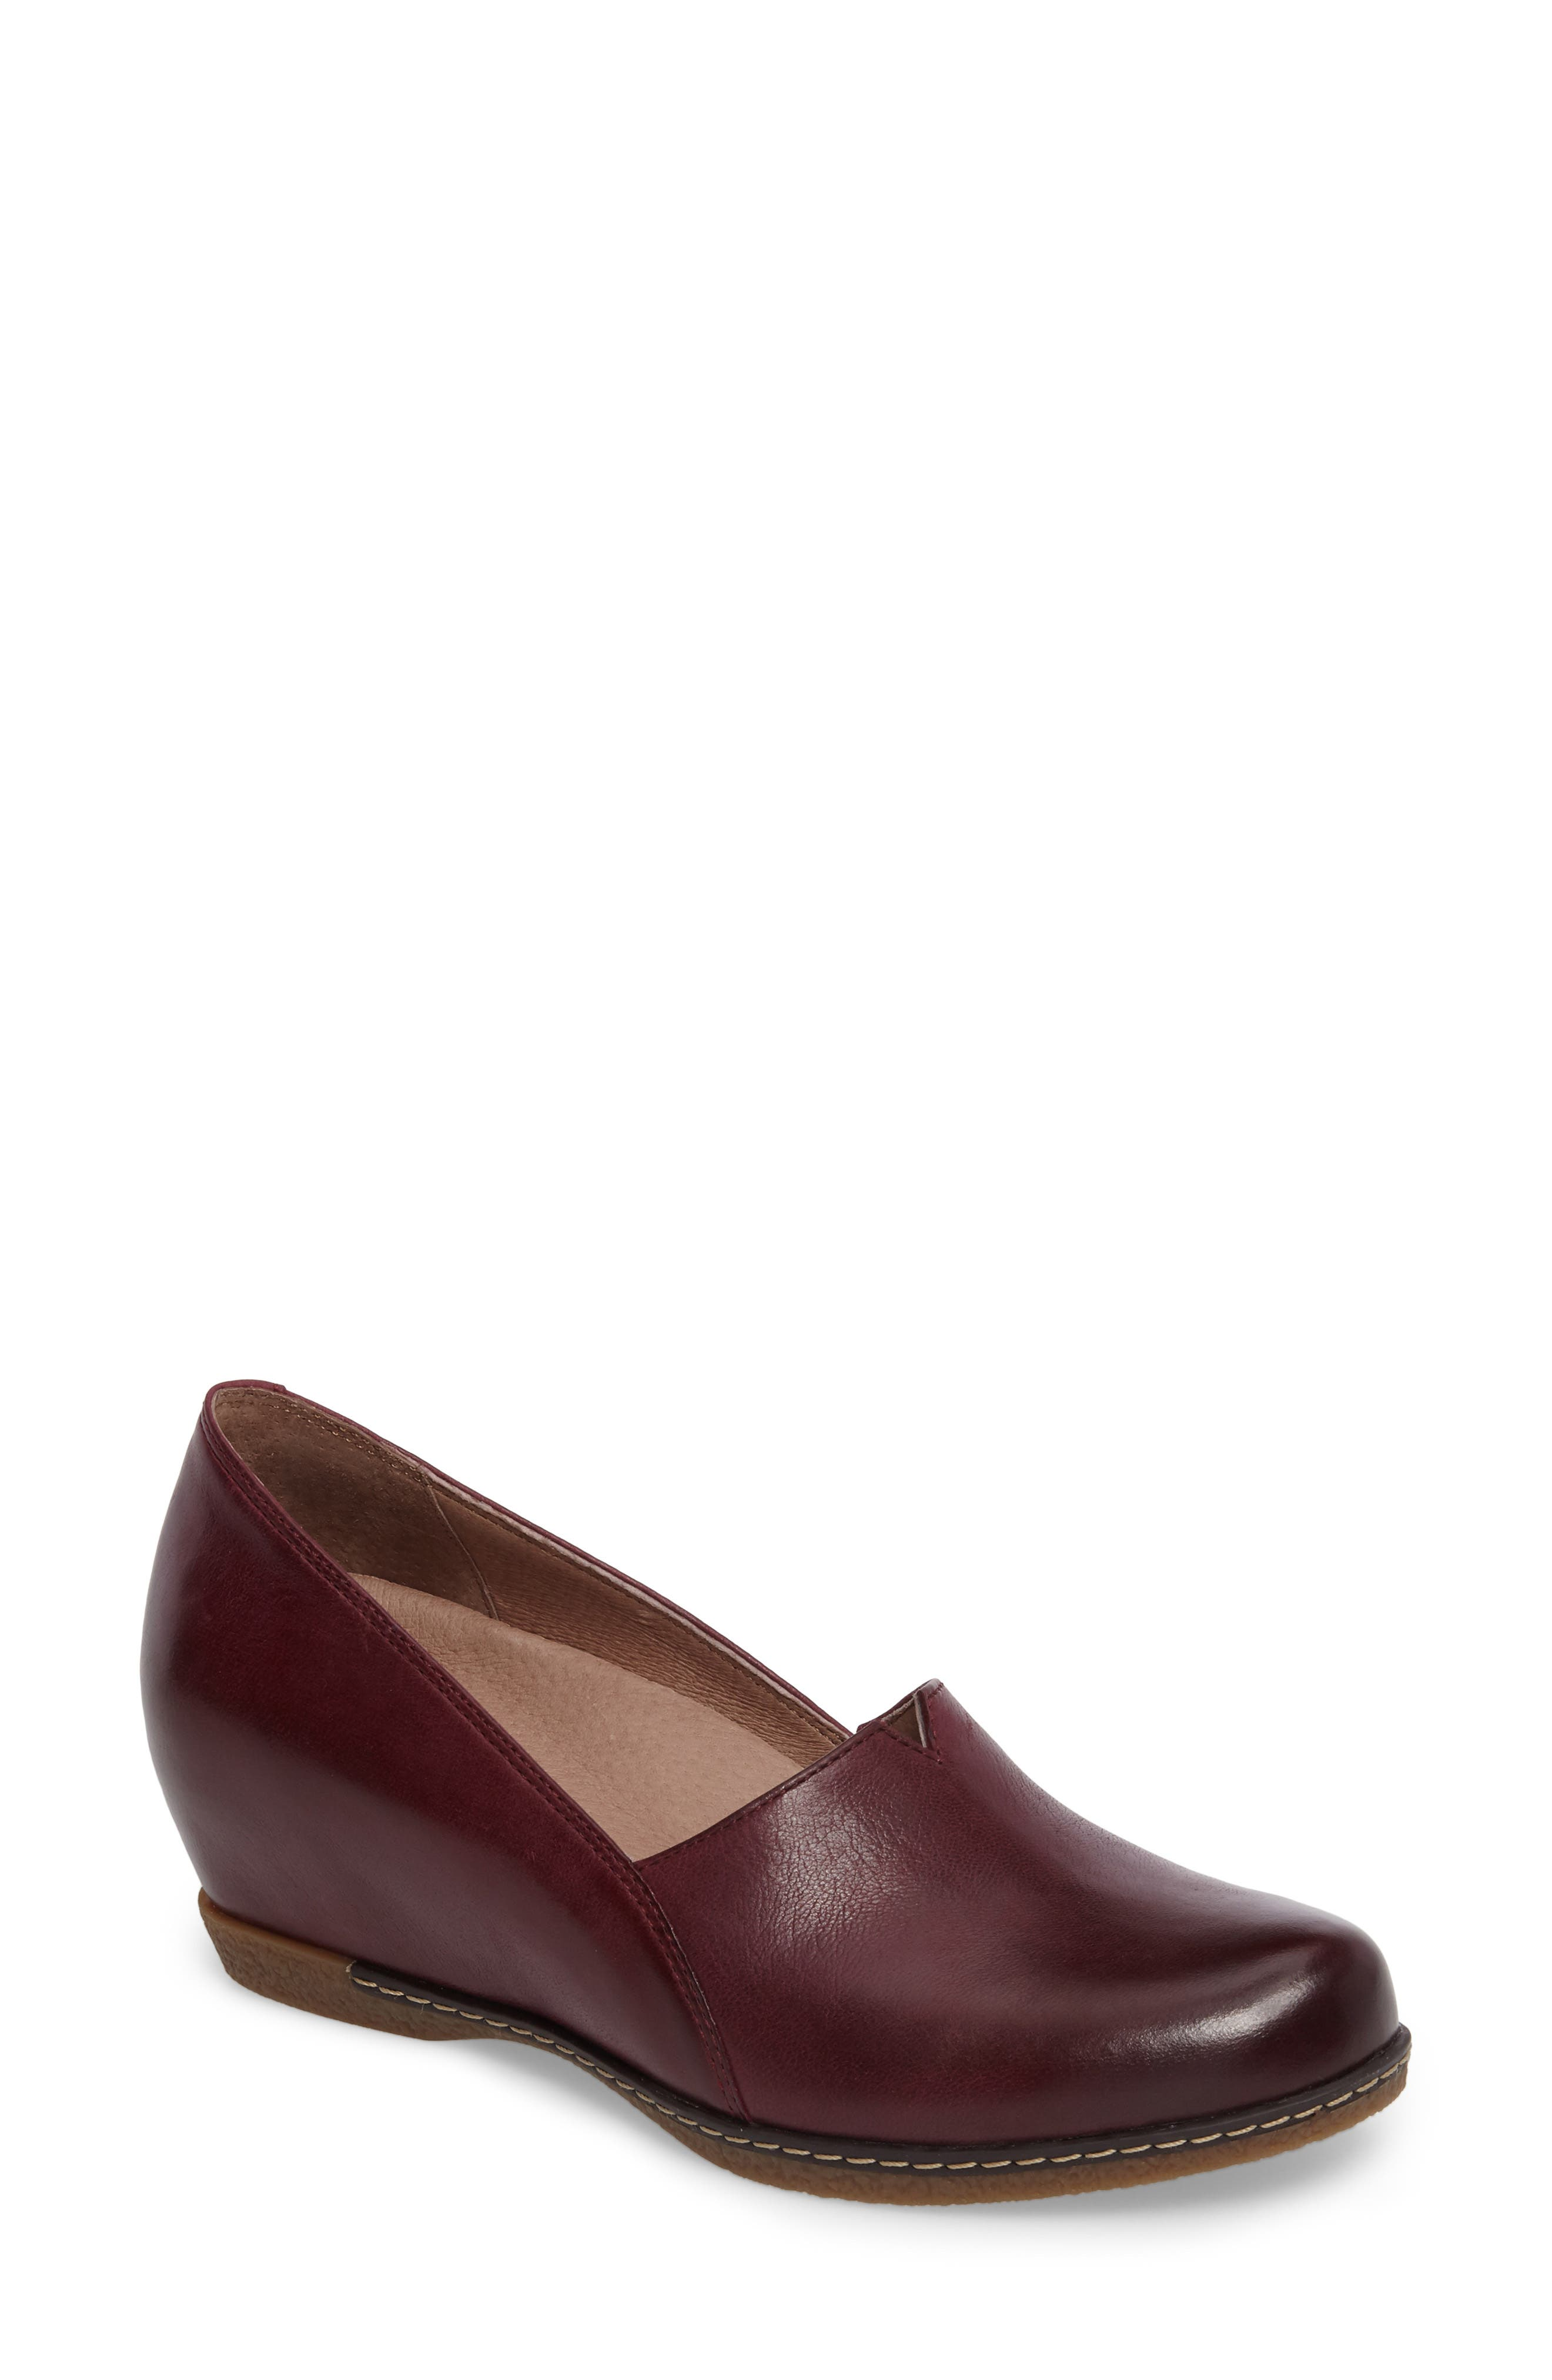 Dansko Liliana Concealed Wedge Slip-On (Women)